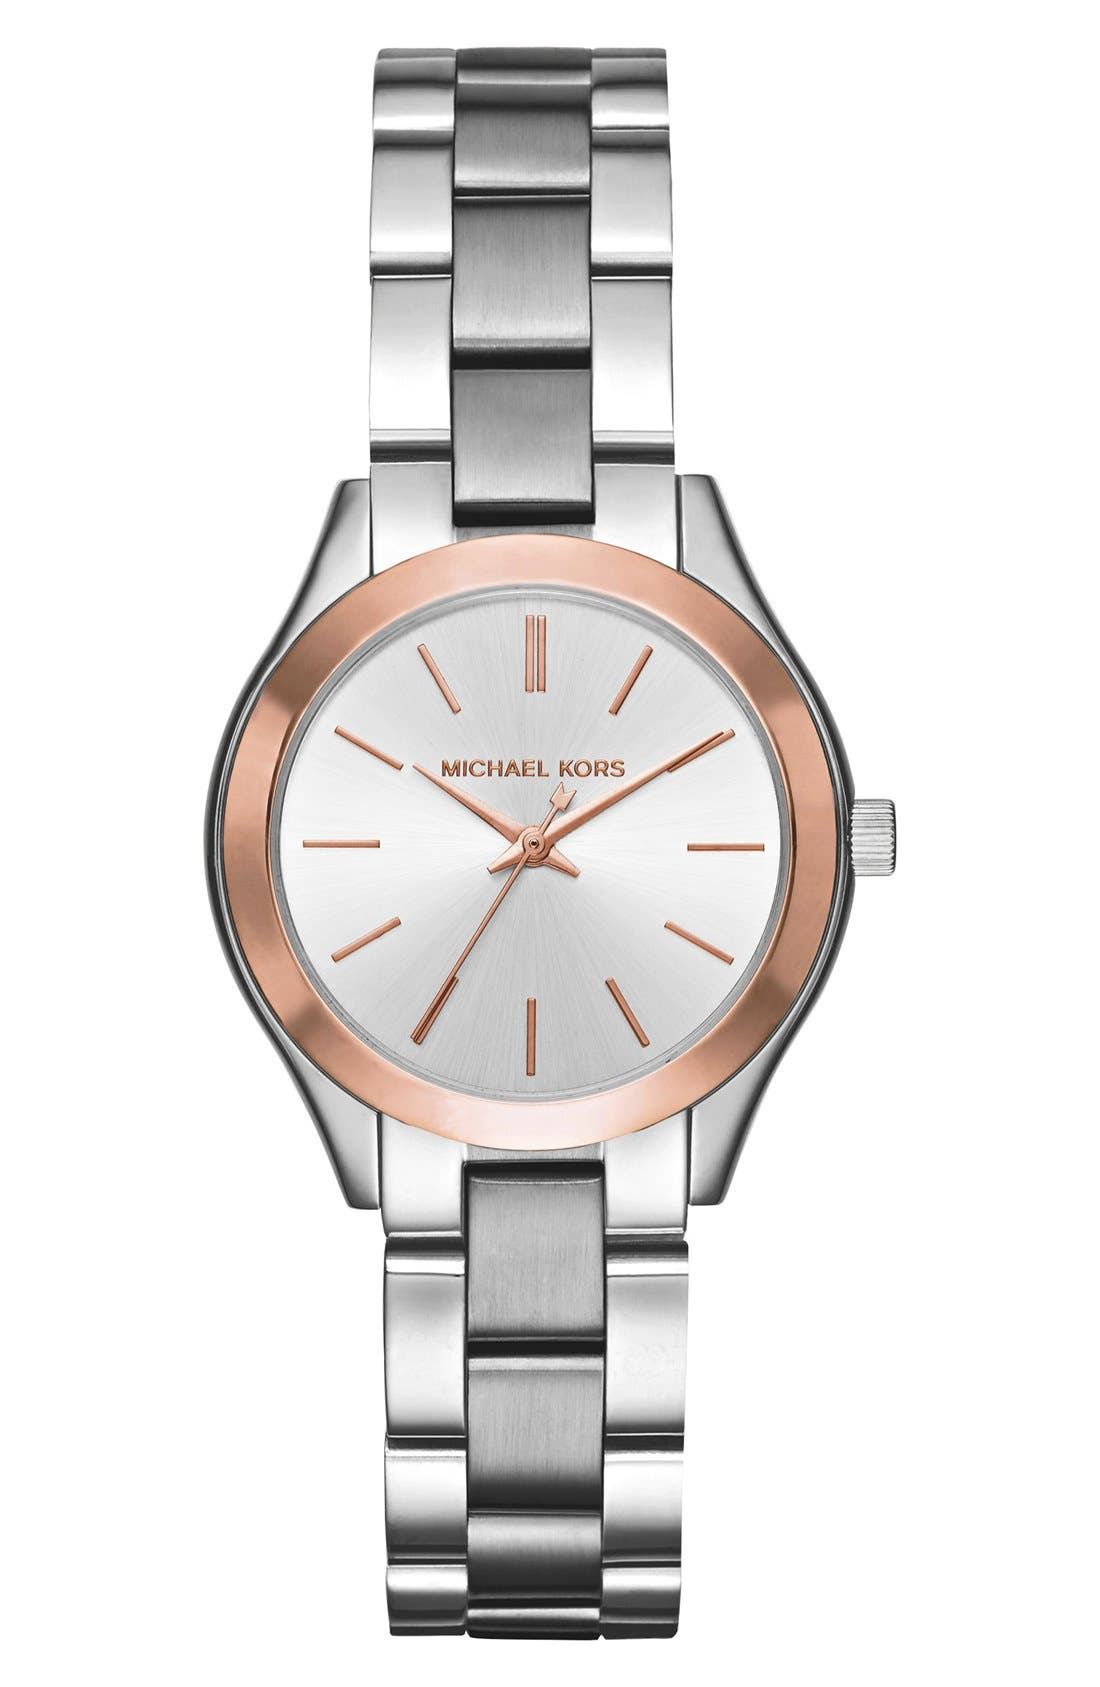 MICHAEL KORS Slim Runway Bracelet Watch, 33mm